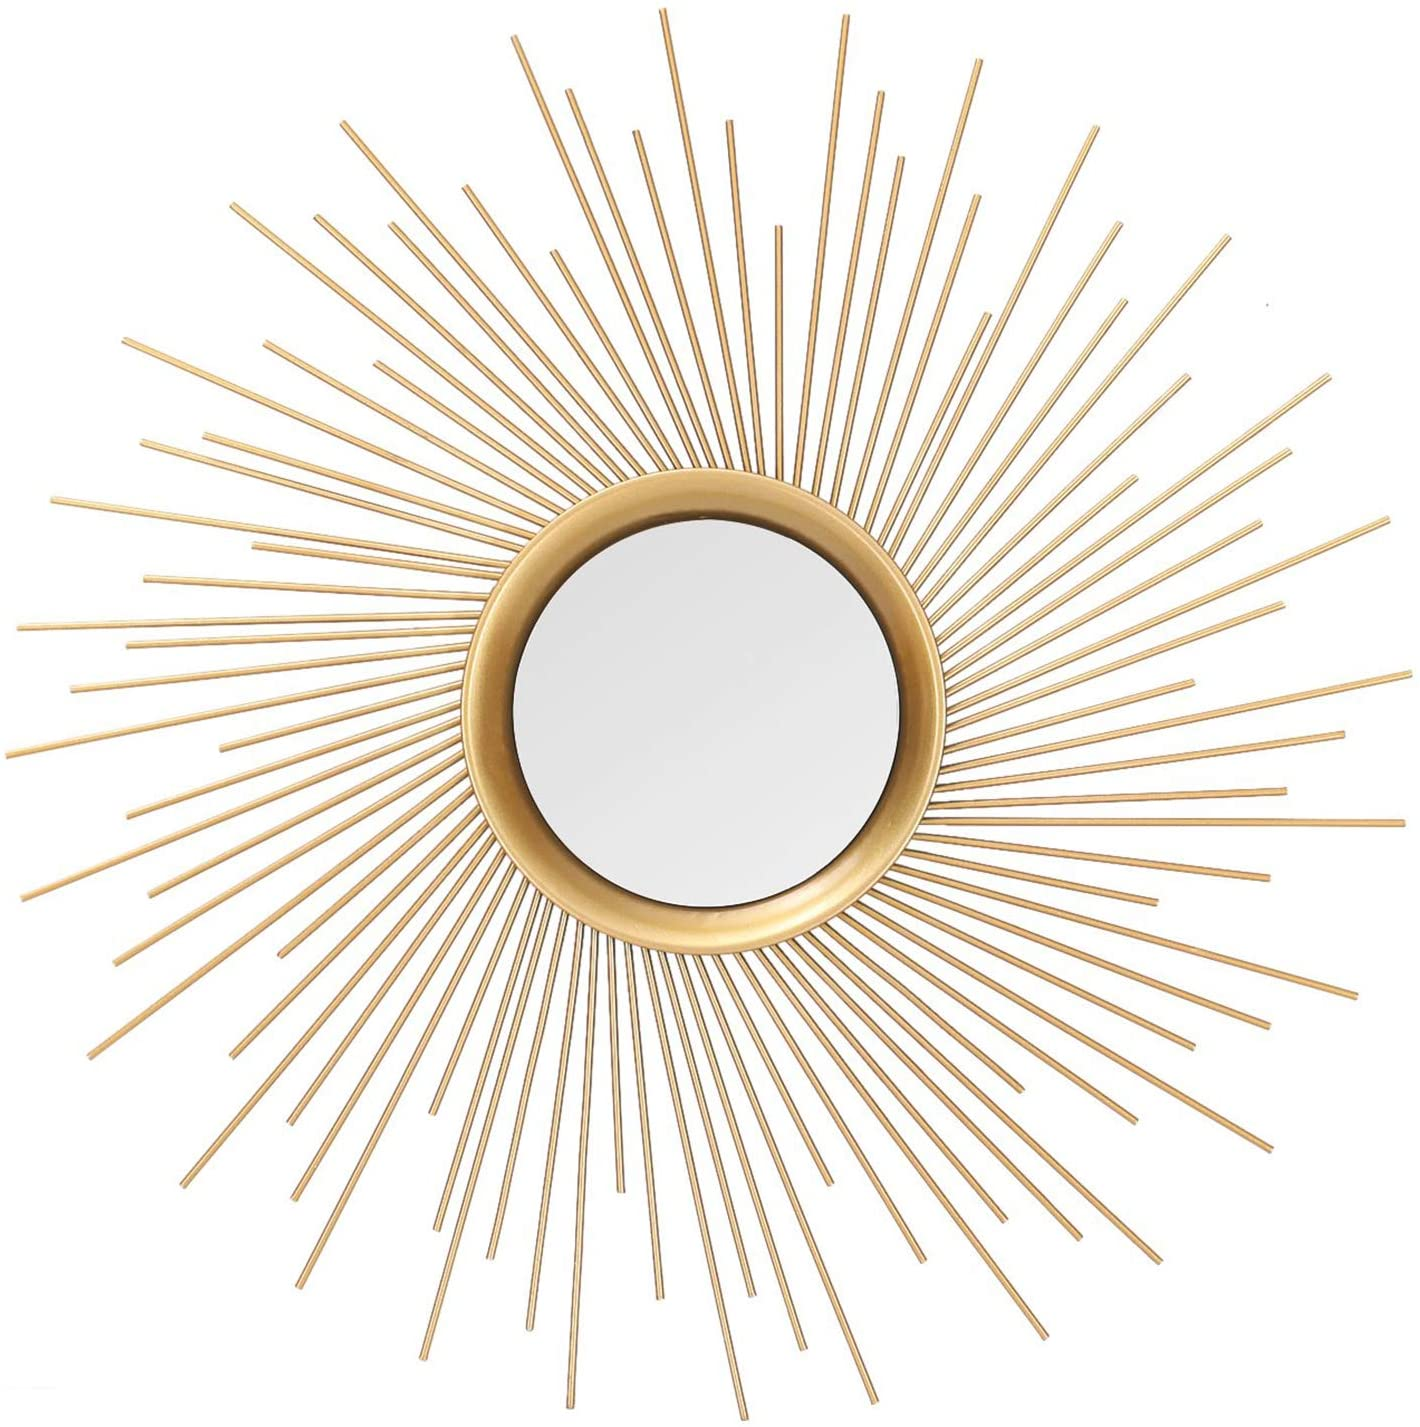 Asense Home Collection Sunburst Mirror, Classic Metal Decorative Wall Mirror